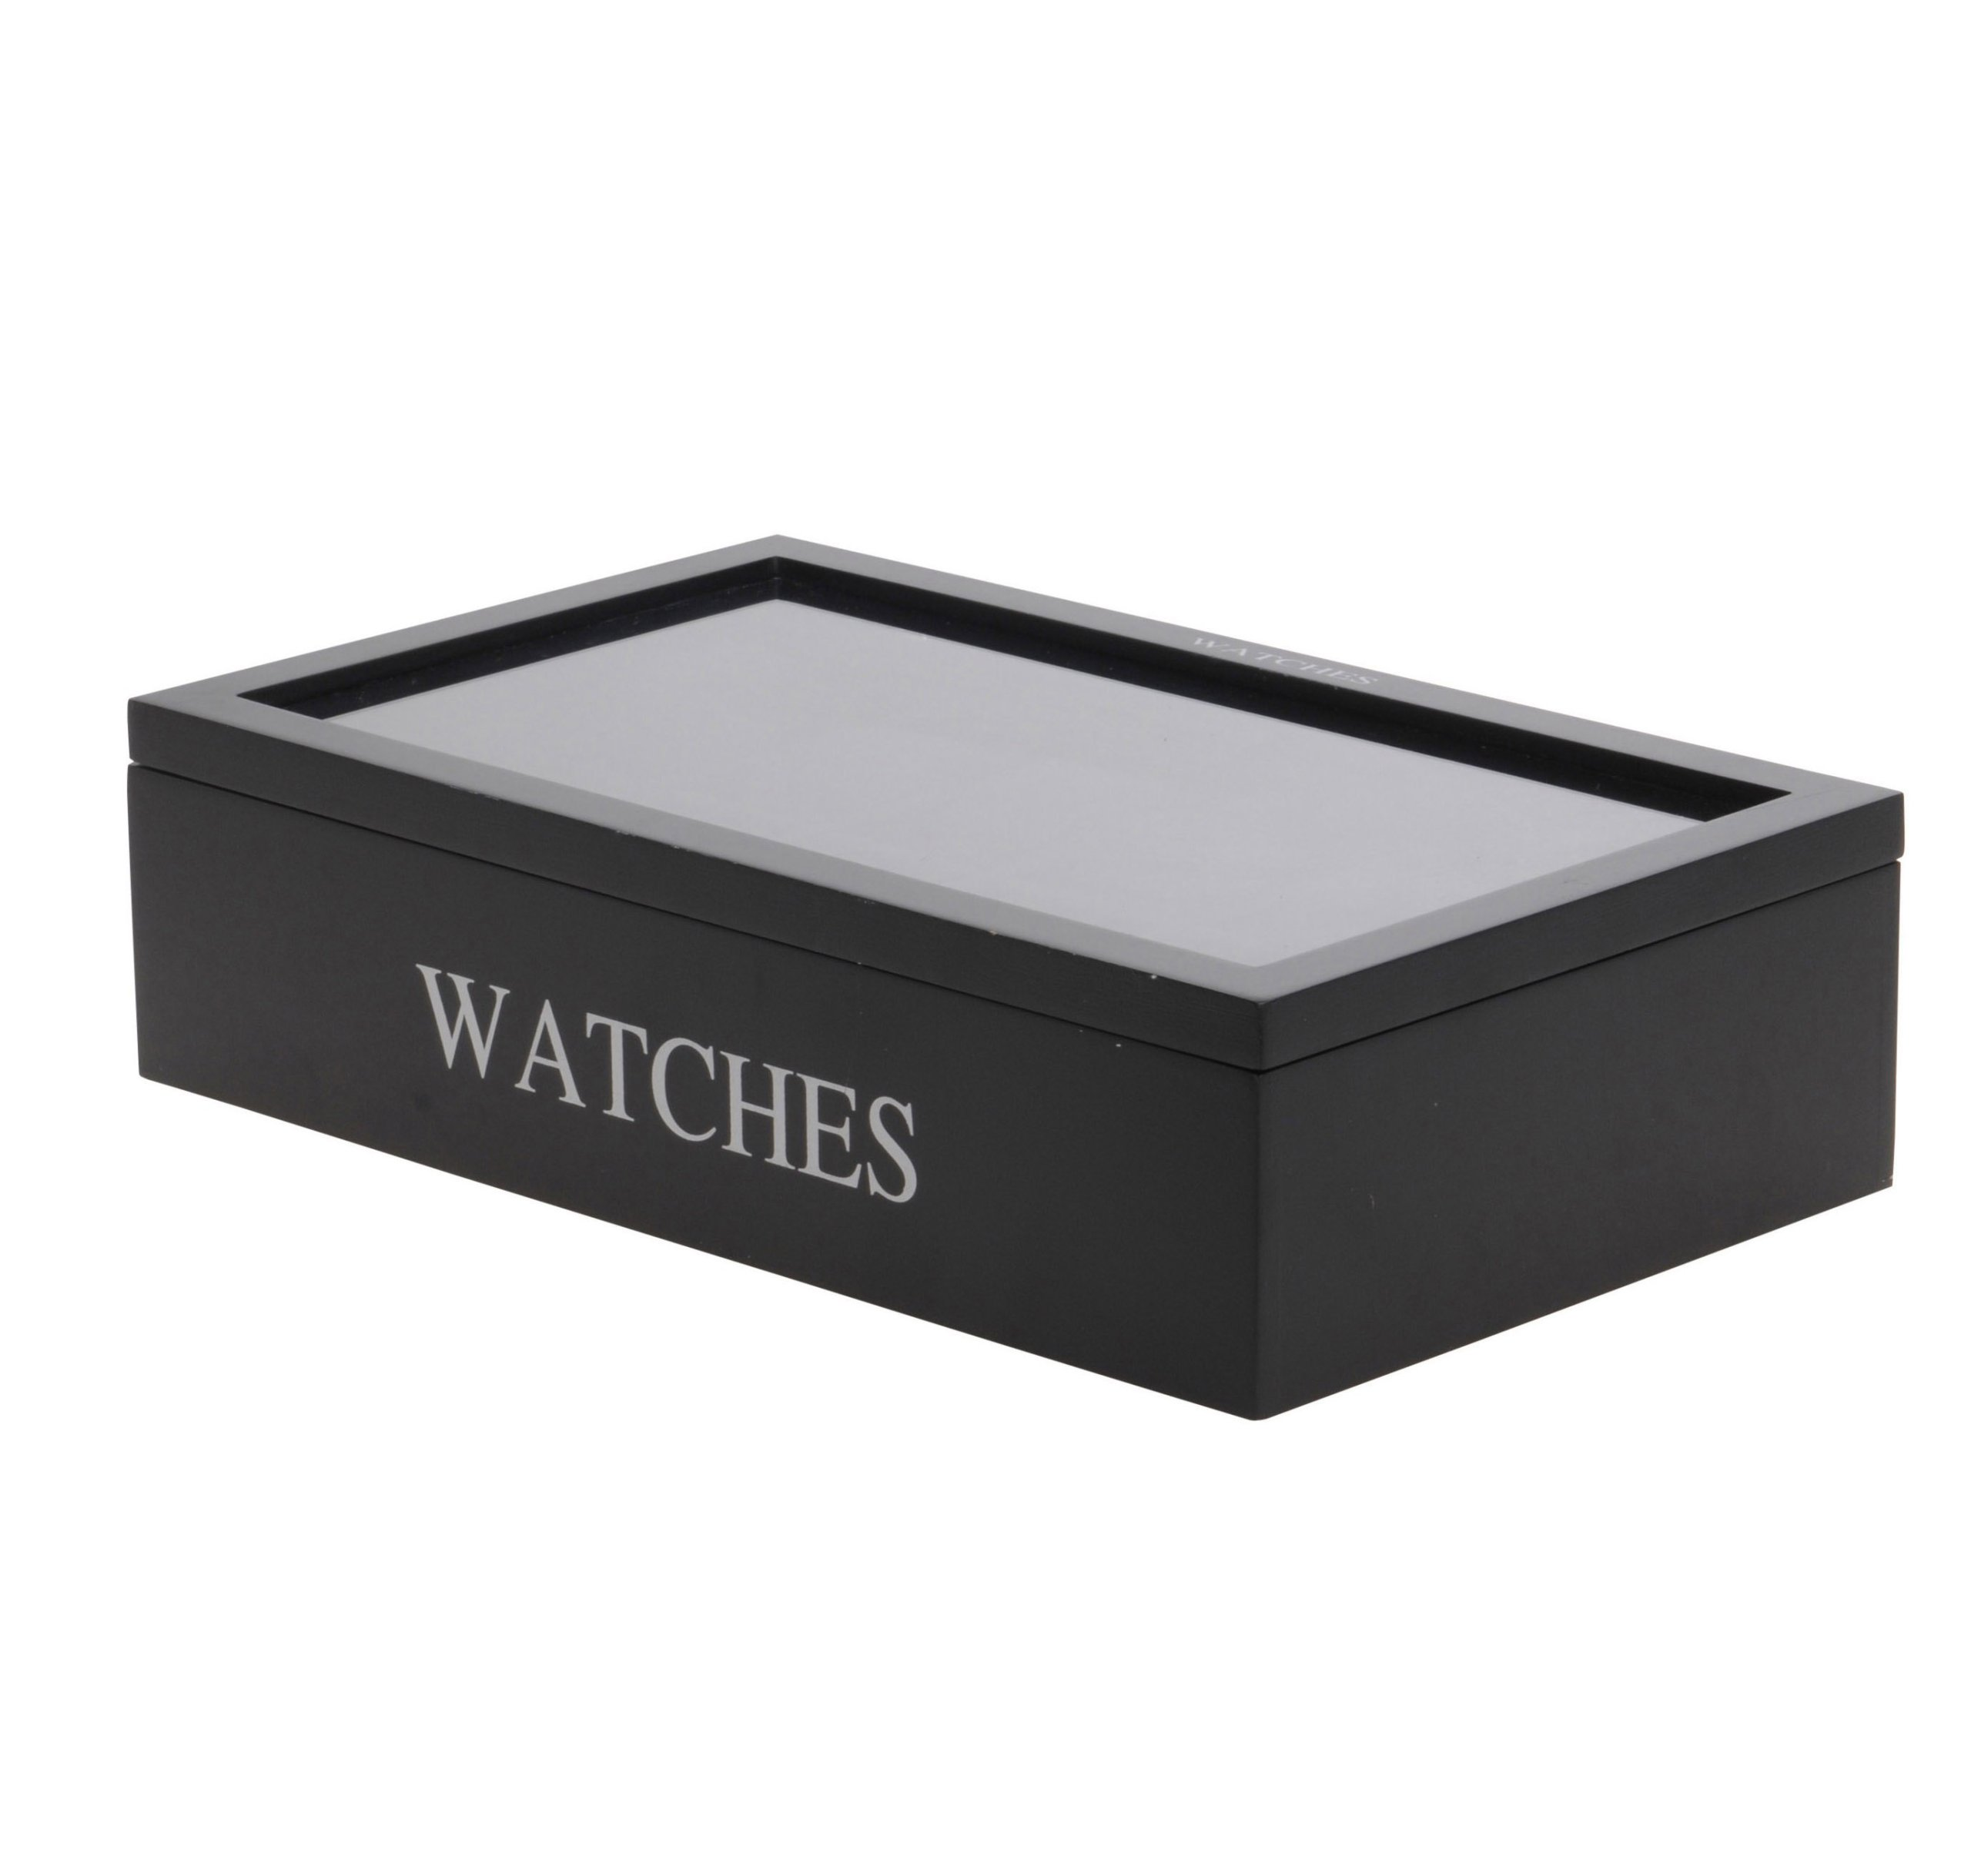 Item The BOX is WATCH BOX case for 12 HOURS spell